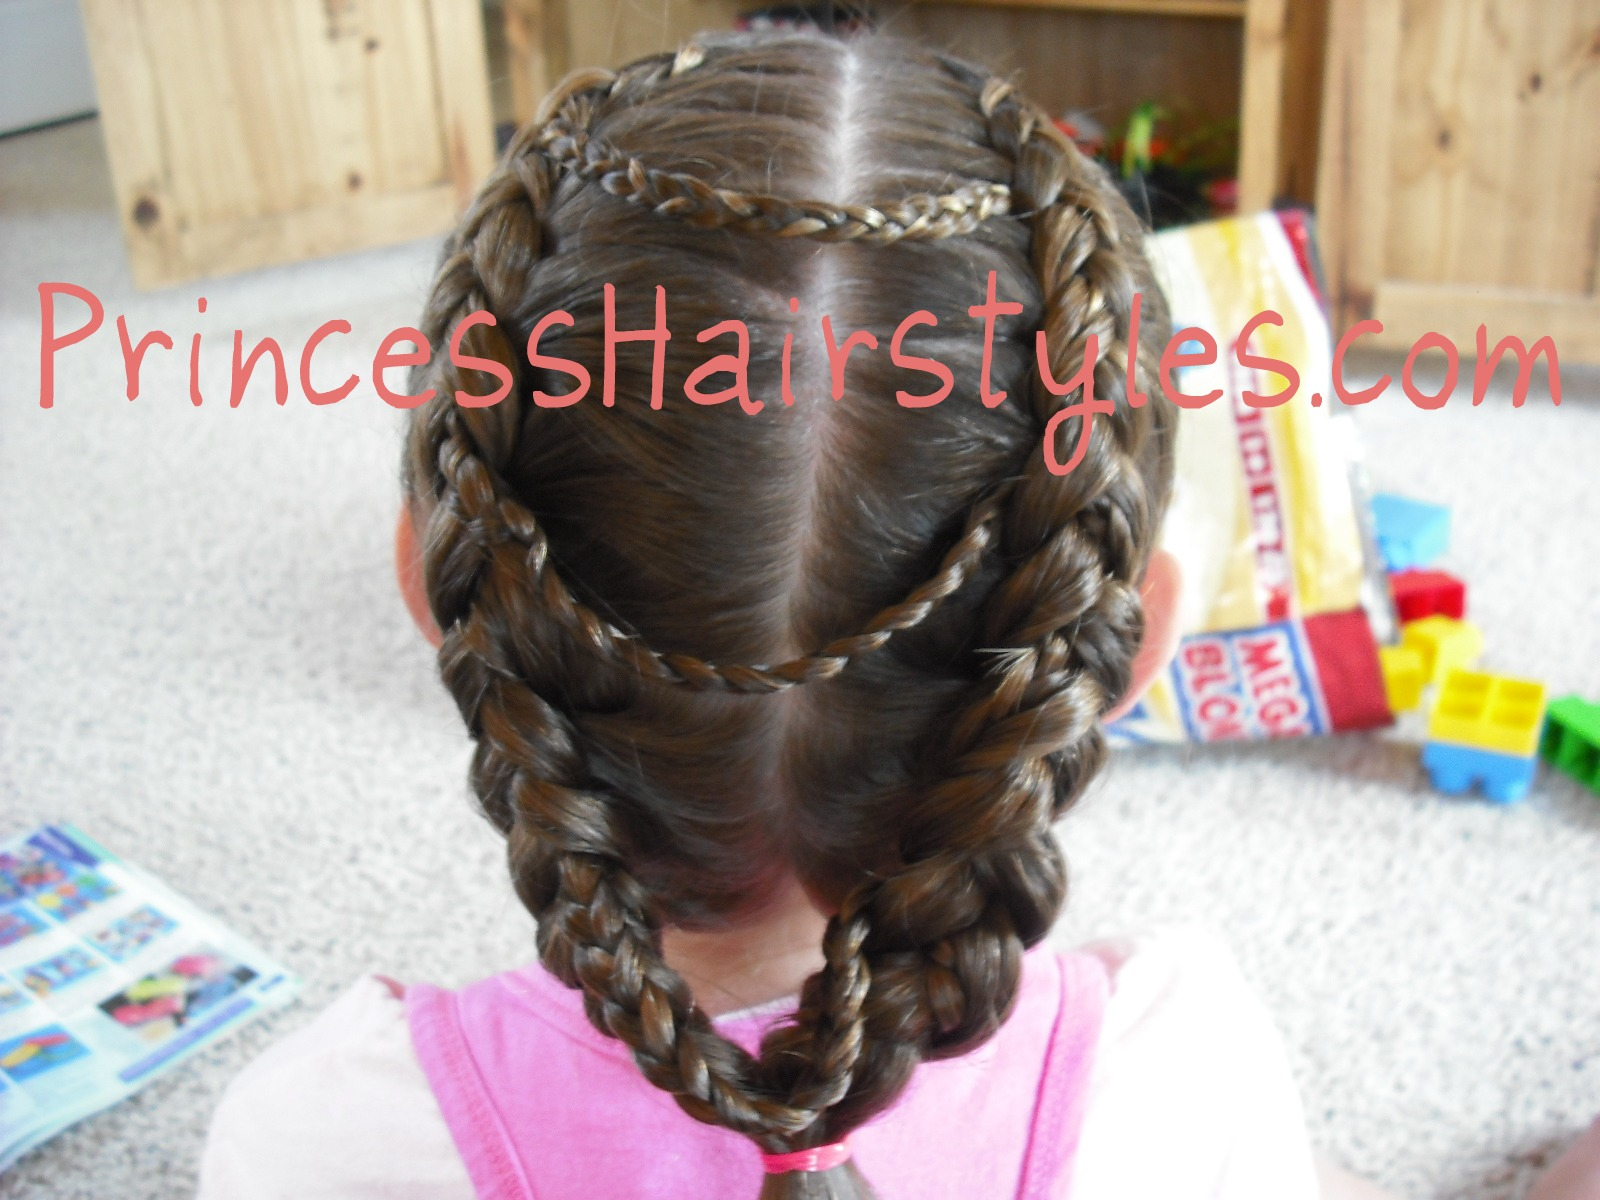 Hairstyles For Girls Fancy Princess Braids